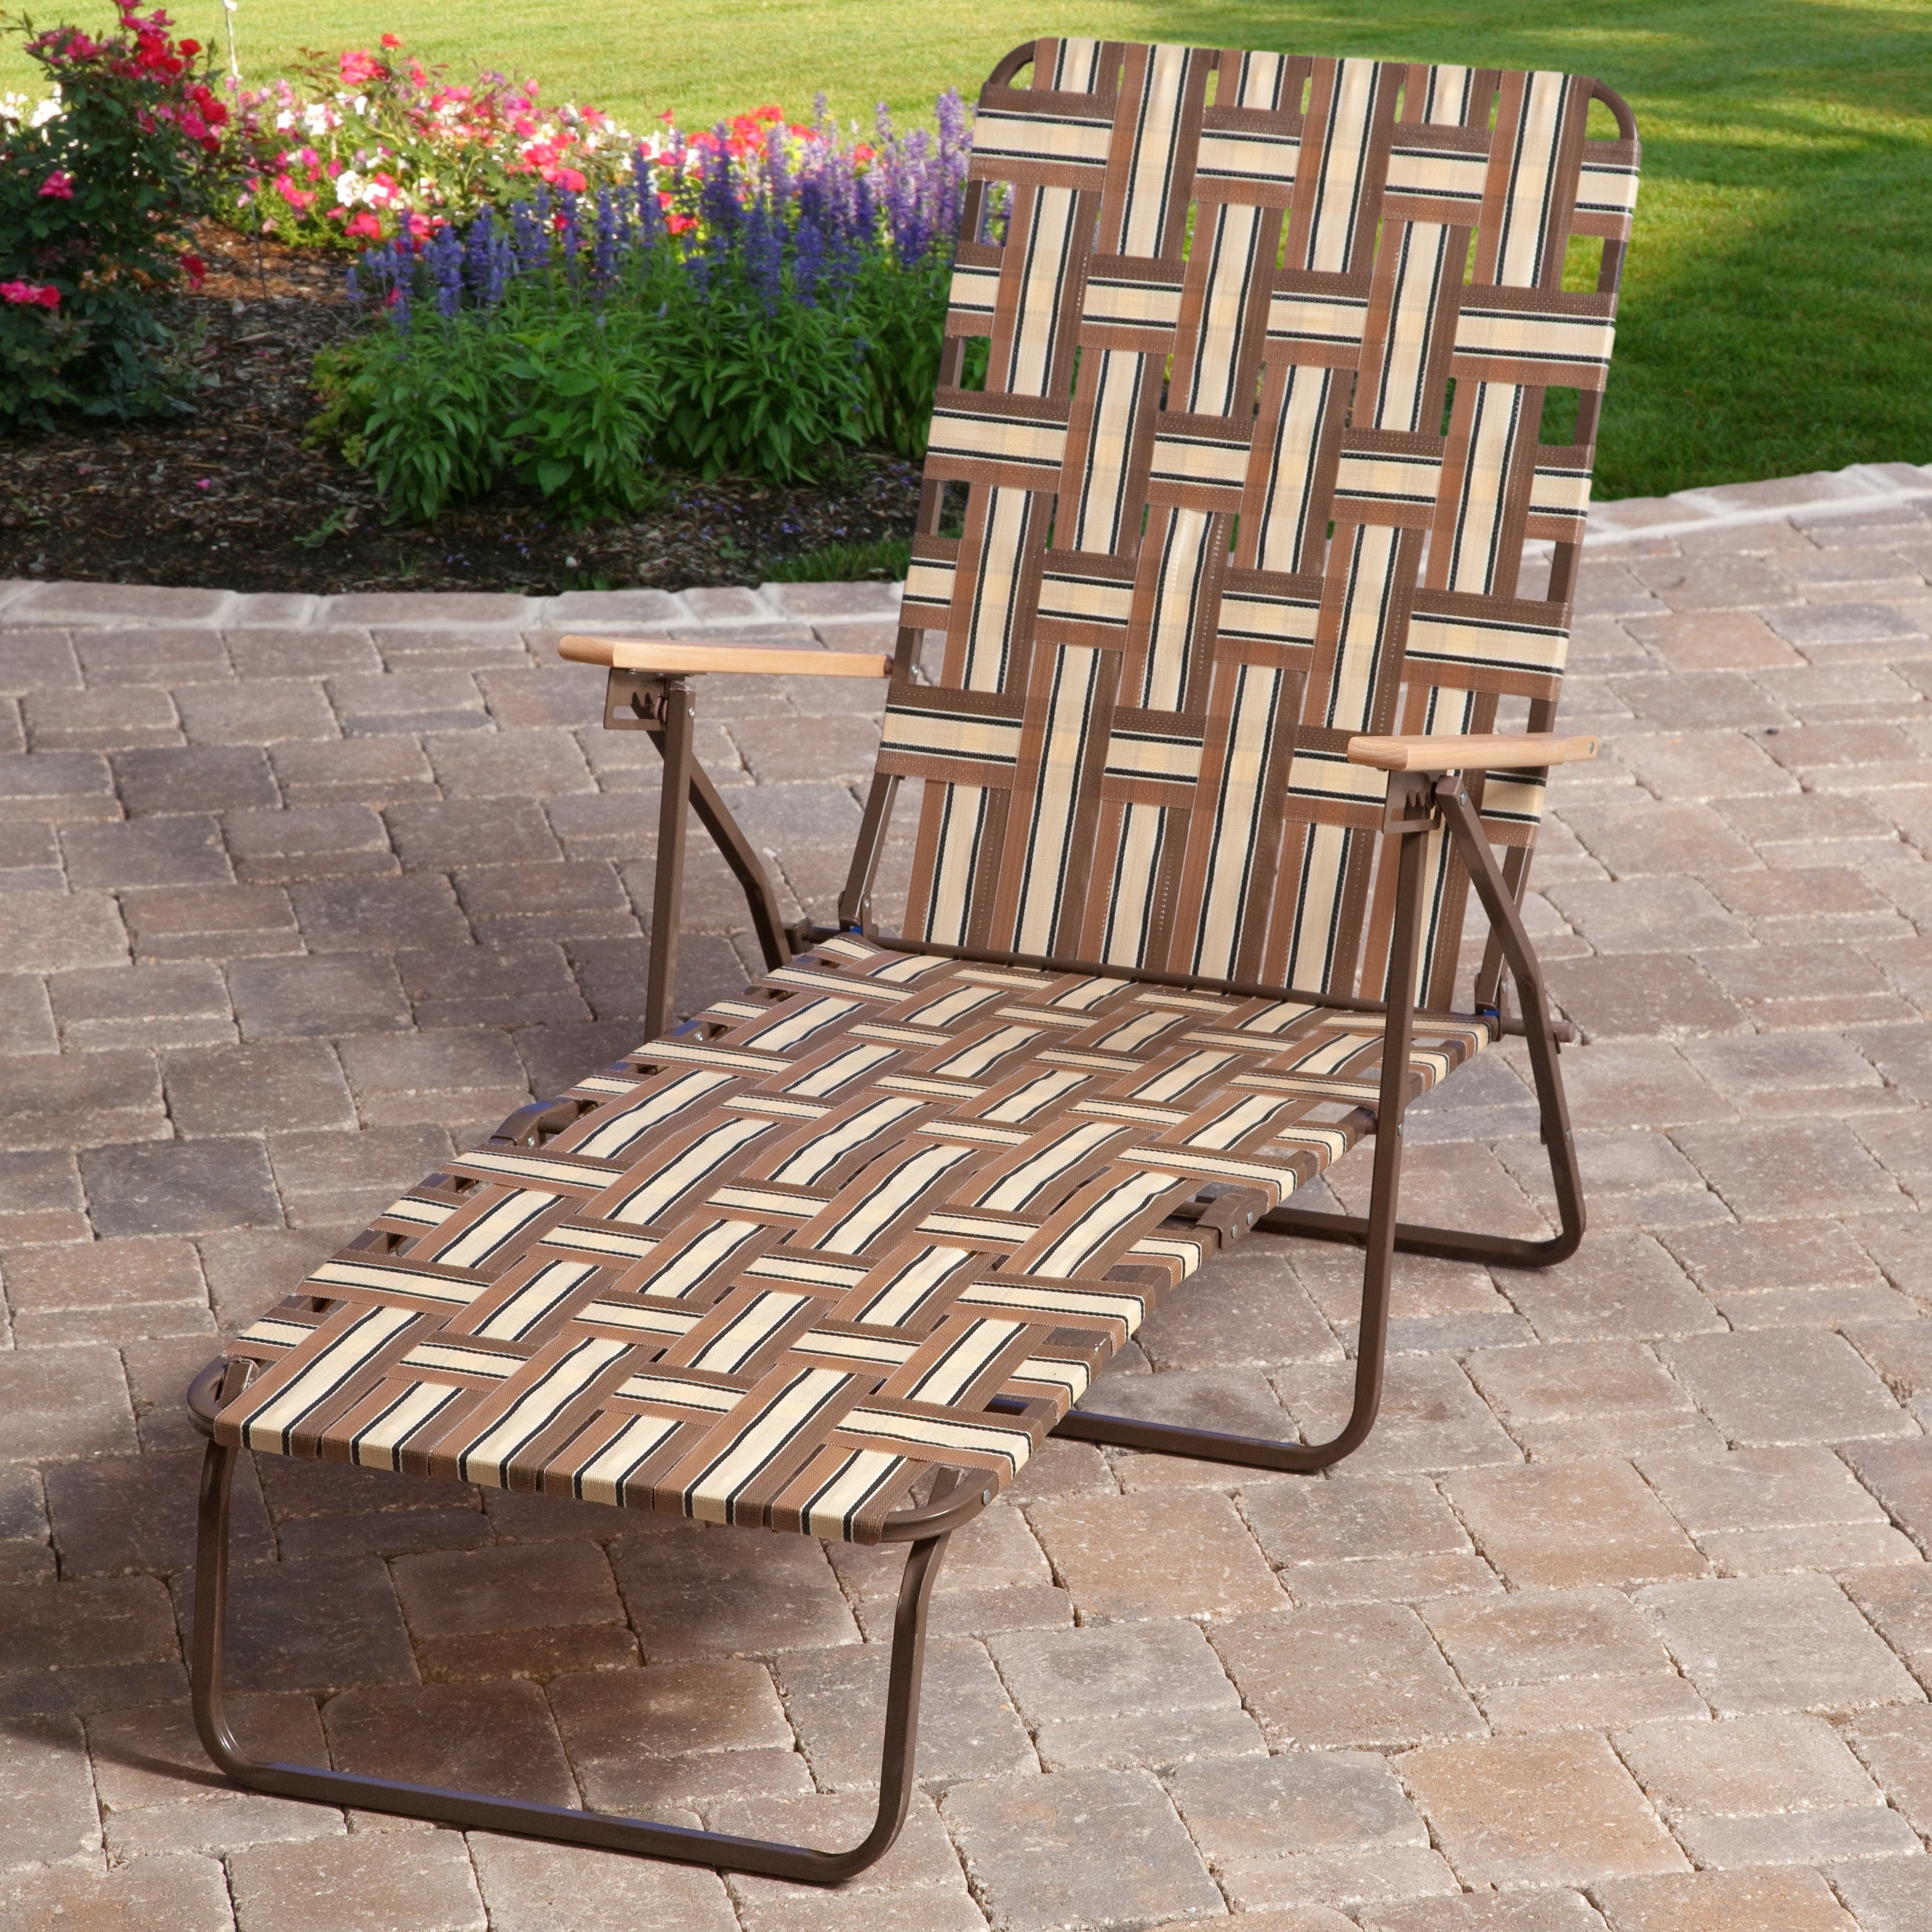 Folding Chaise Lounge Lawn Chairs Inside Most Recently Released Folding Lawn Chair Lounger • Lounge Chairs Ideas (View 5 of 15)